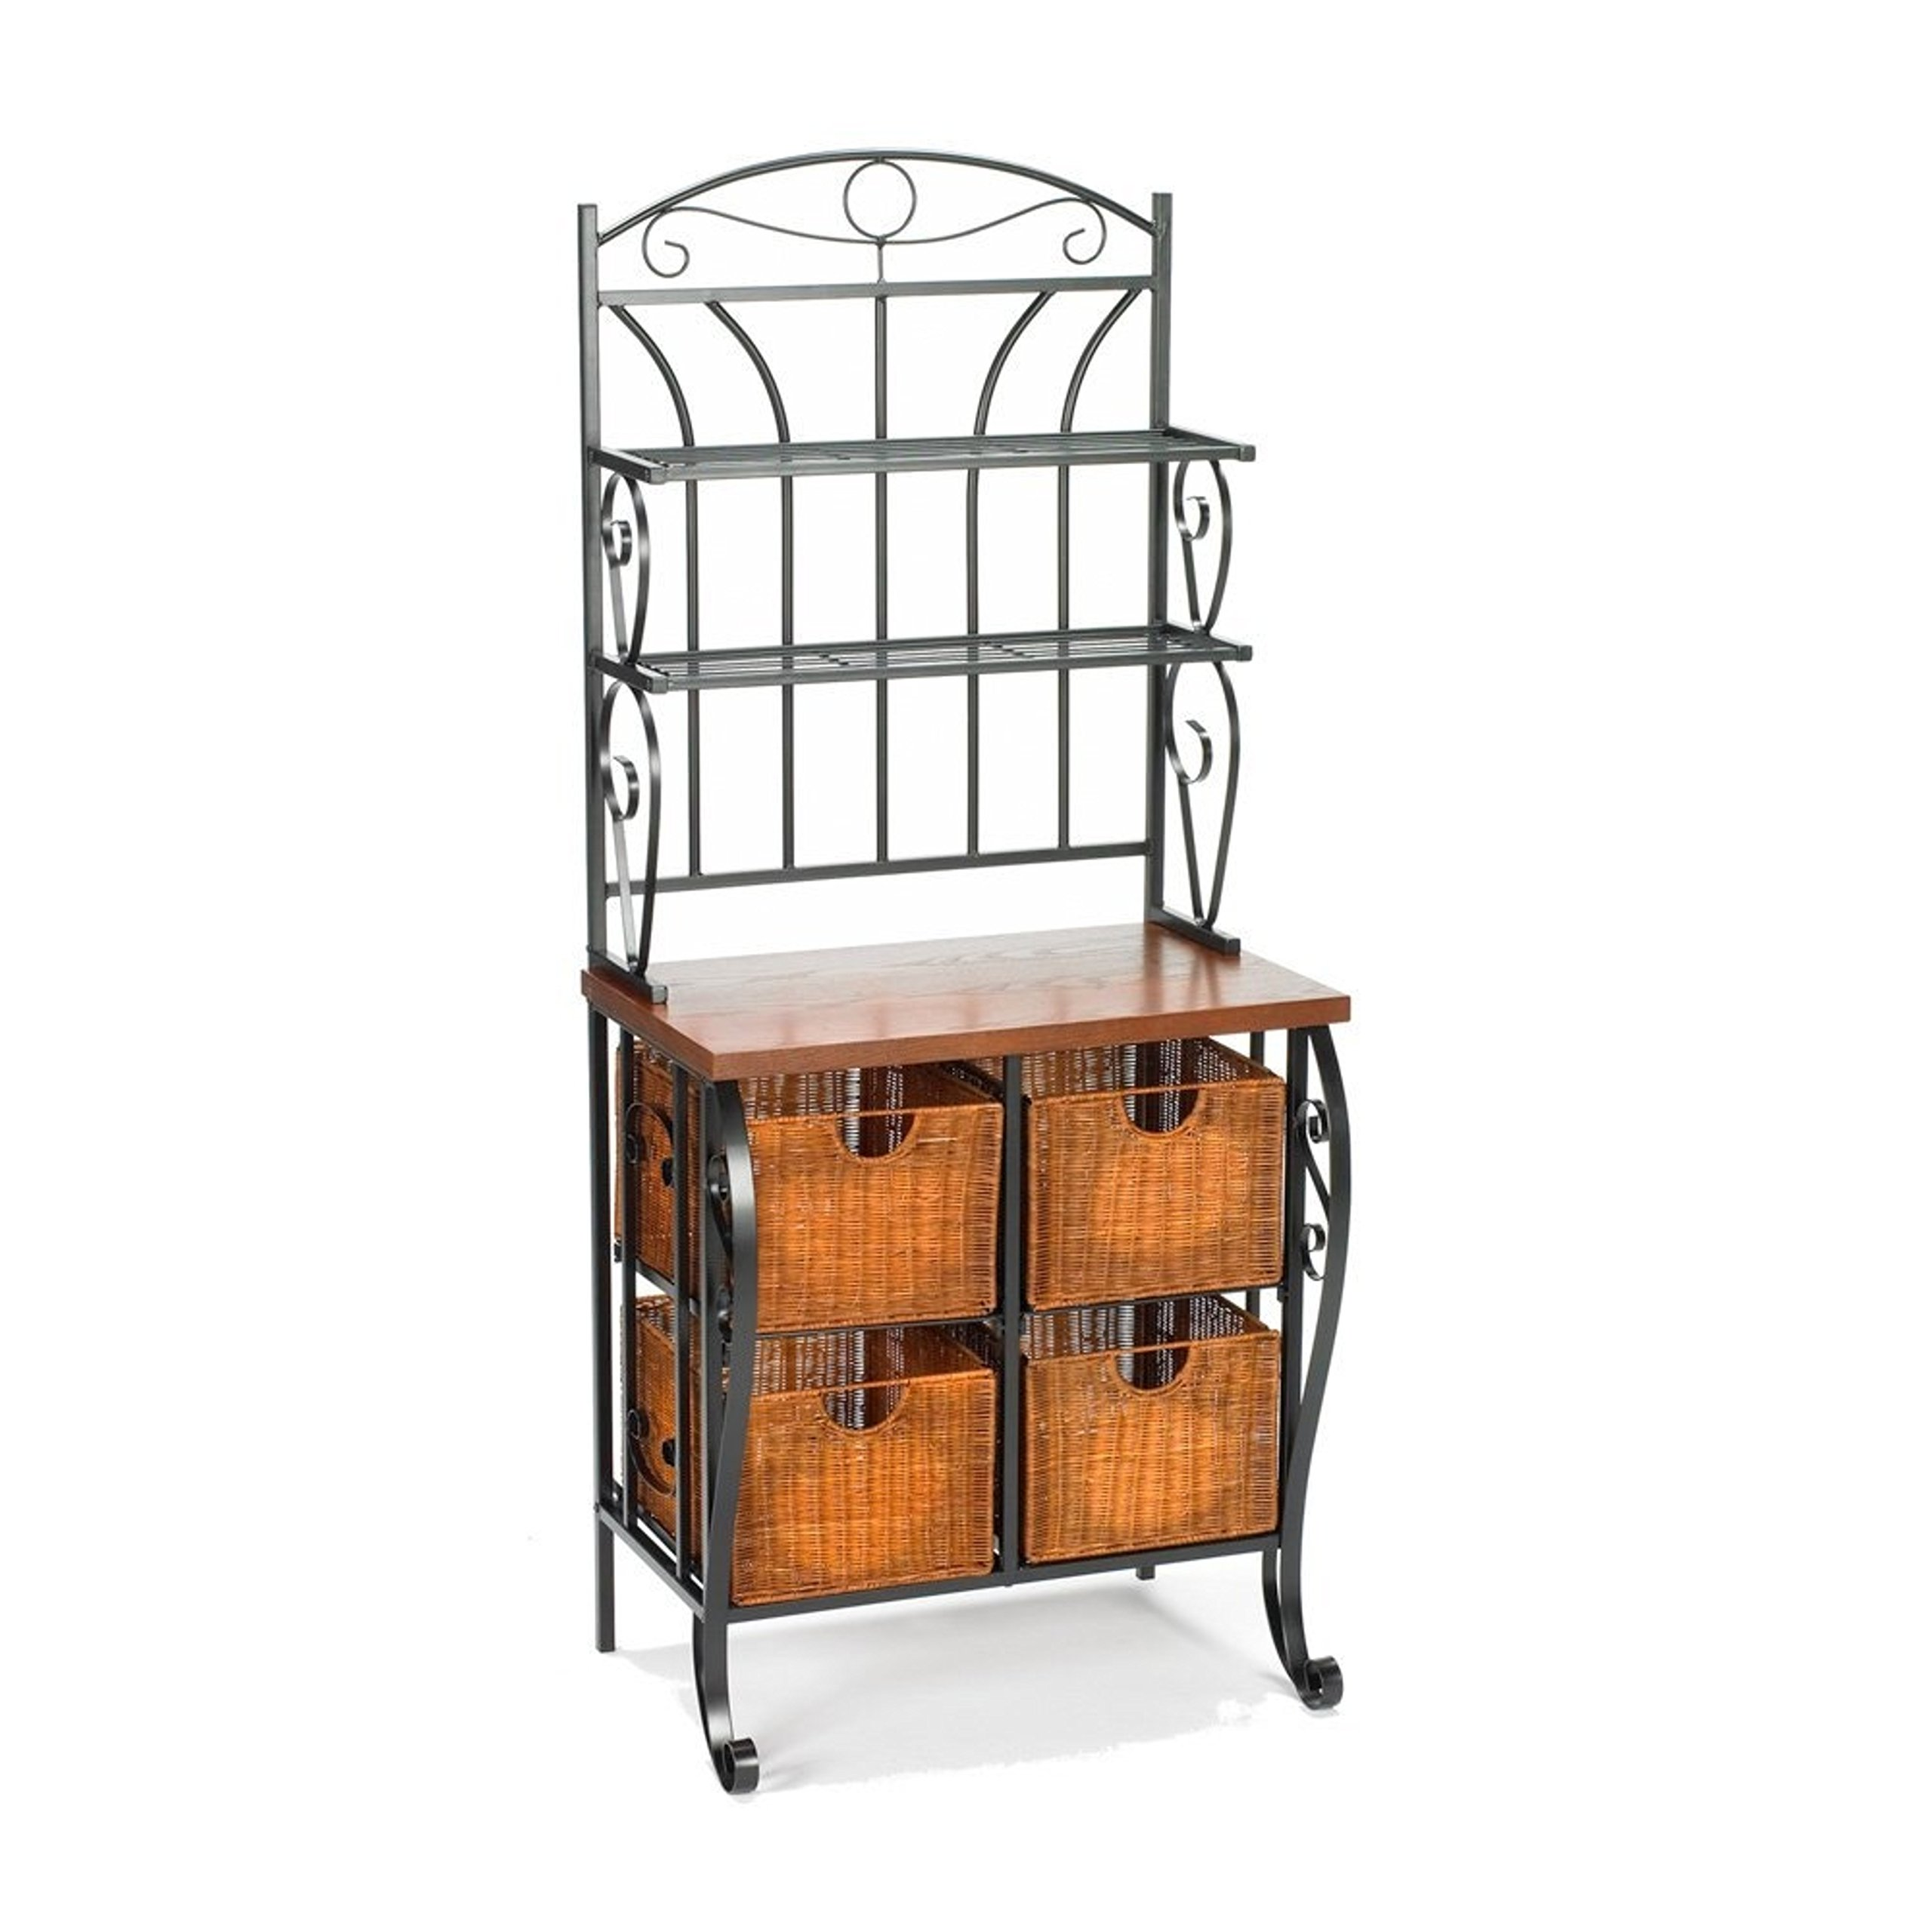 Traditional Look Classic Style Black Iron Baker's Rack With 4 Wicker Baskets by *Southern Enterprises